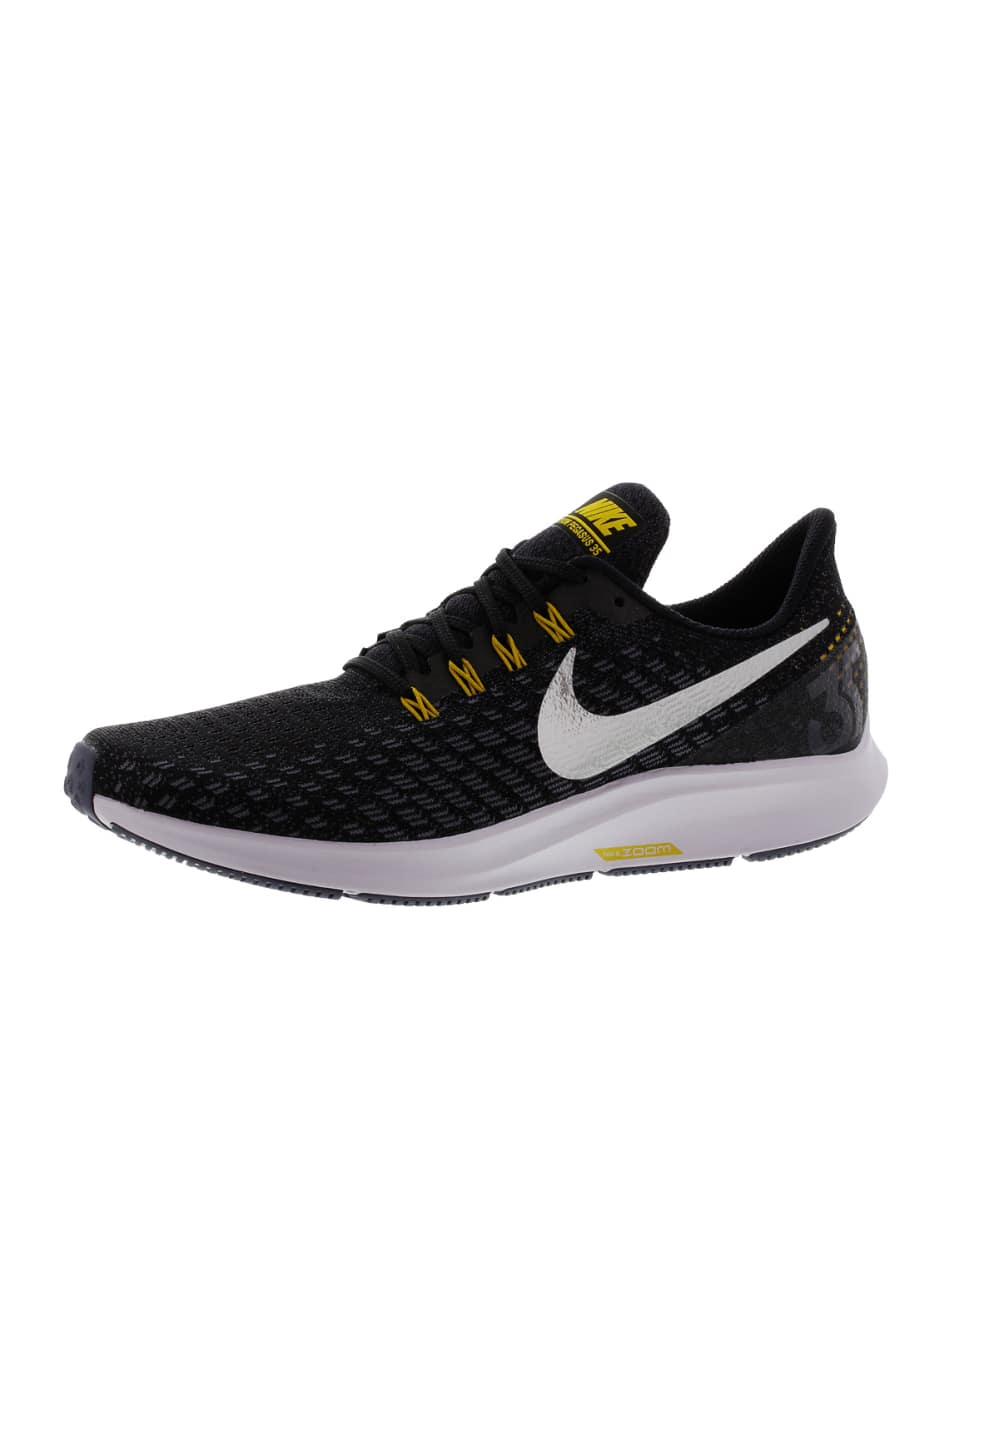 finest selection 6e913 3505e Nike Air Zoom Pegasus 35 - Running shoes for Men - Black